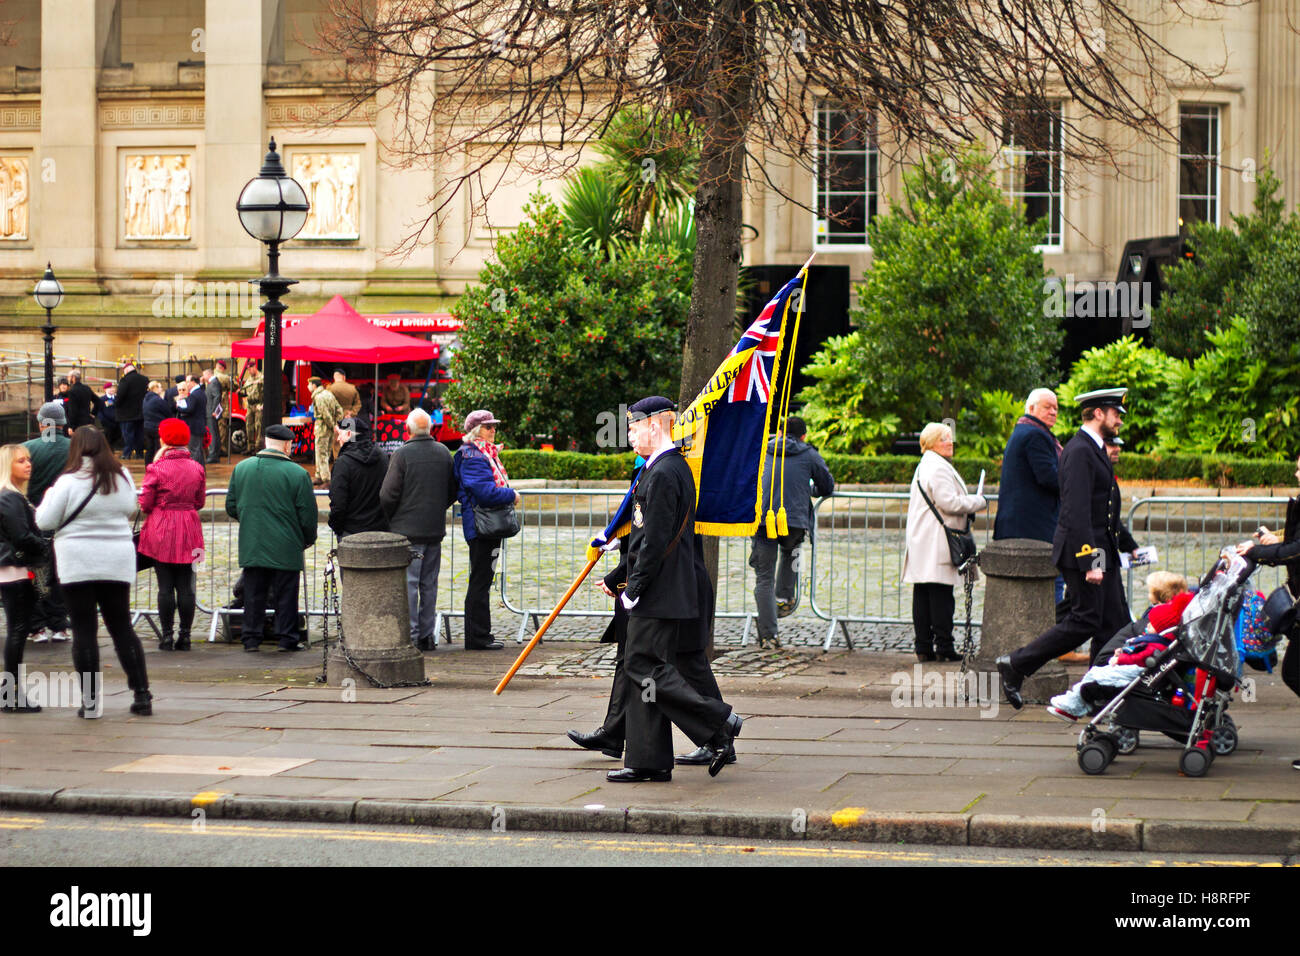 Preparing for the annual Remembrance Day Parade in Liverpool UK - Stock Image